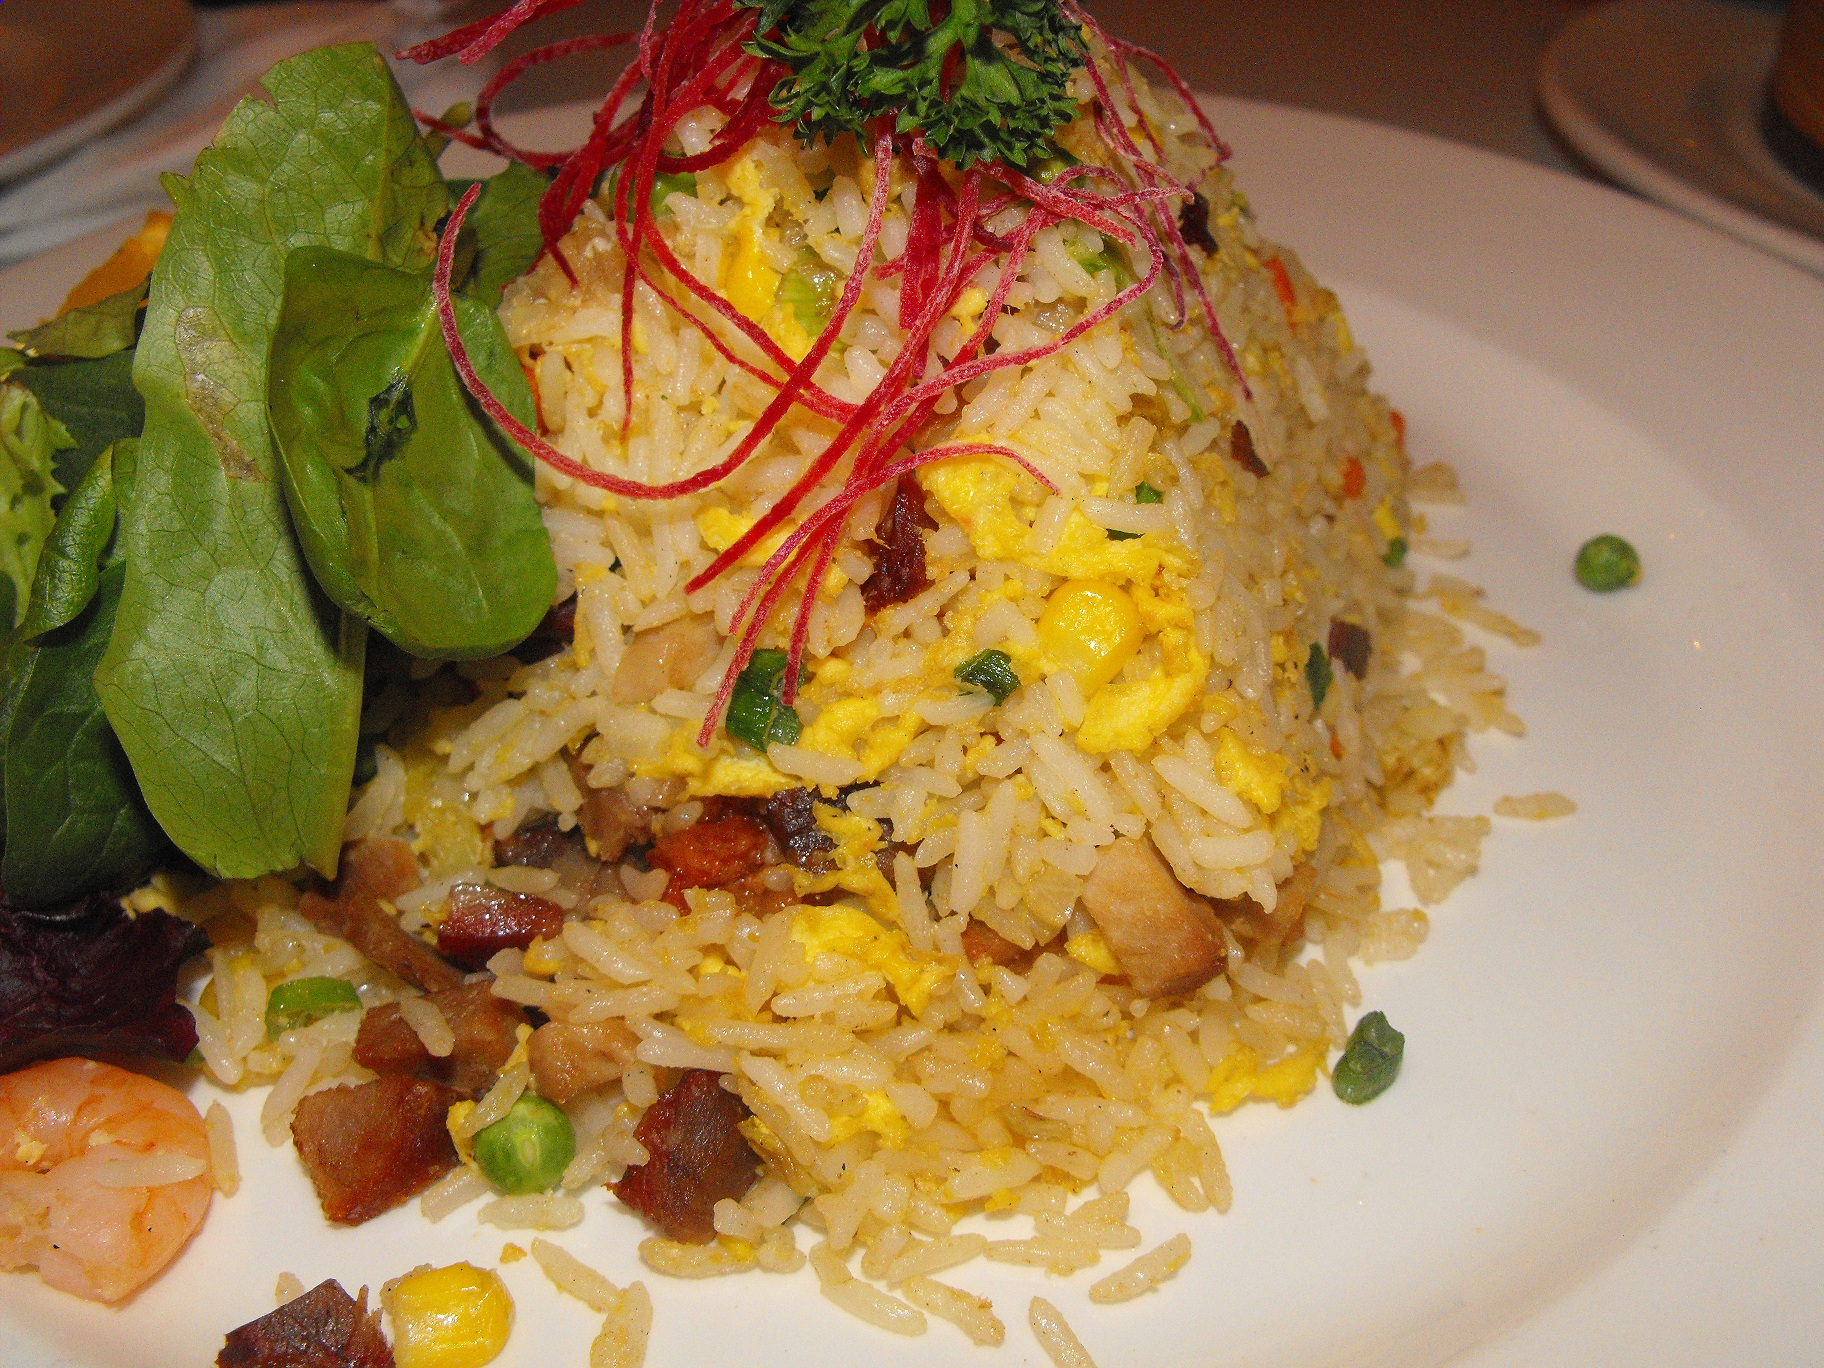 http://foodloader.net/cutie_2011-03-01_Yeung_Chow_Fried_Rice.jpg